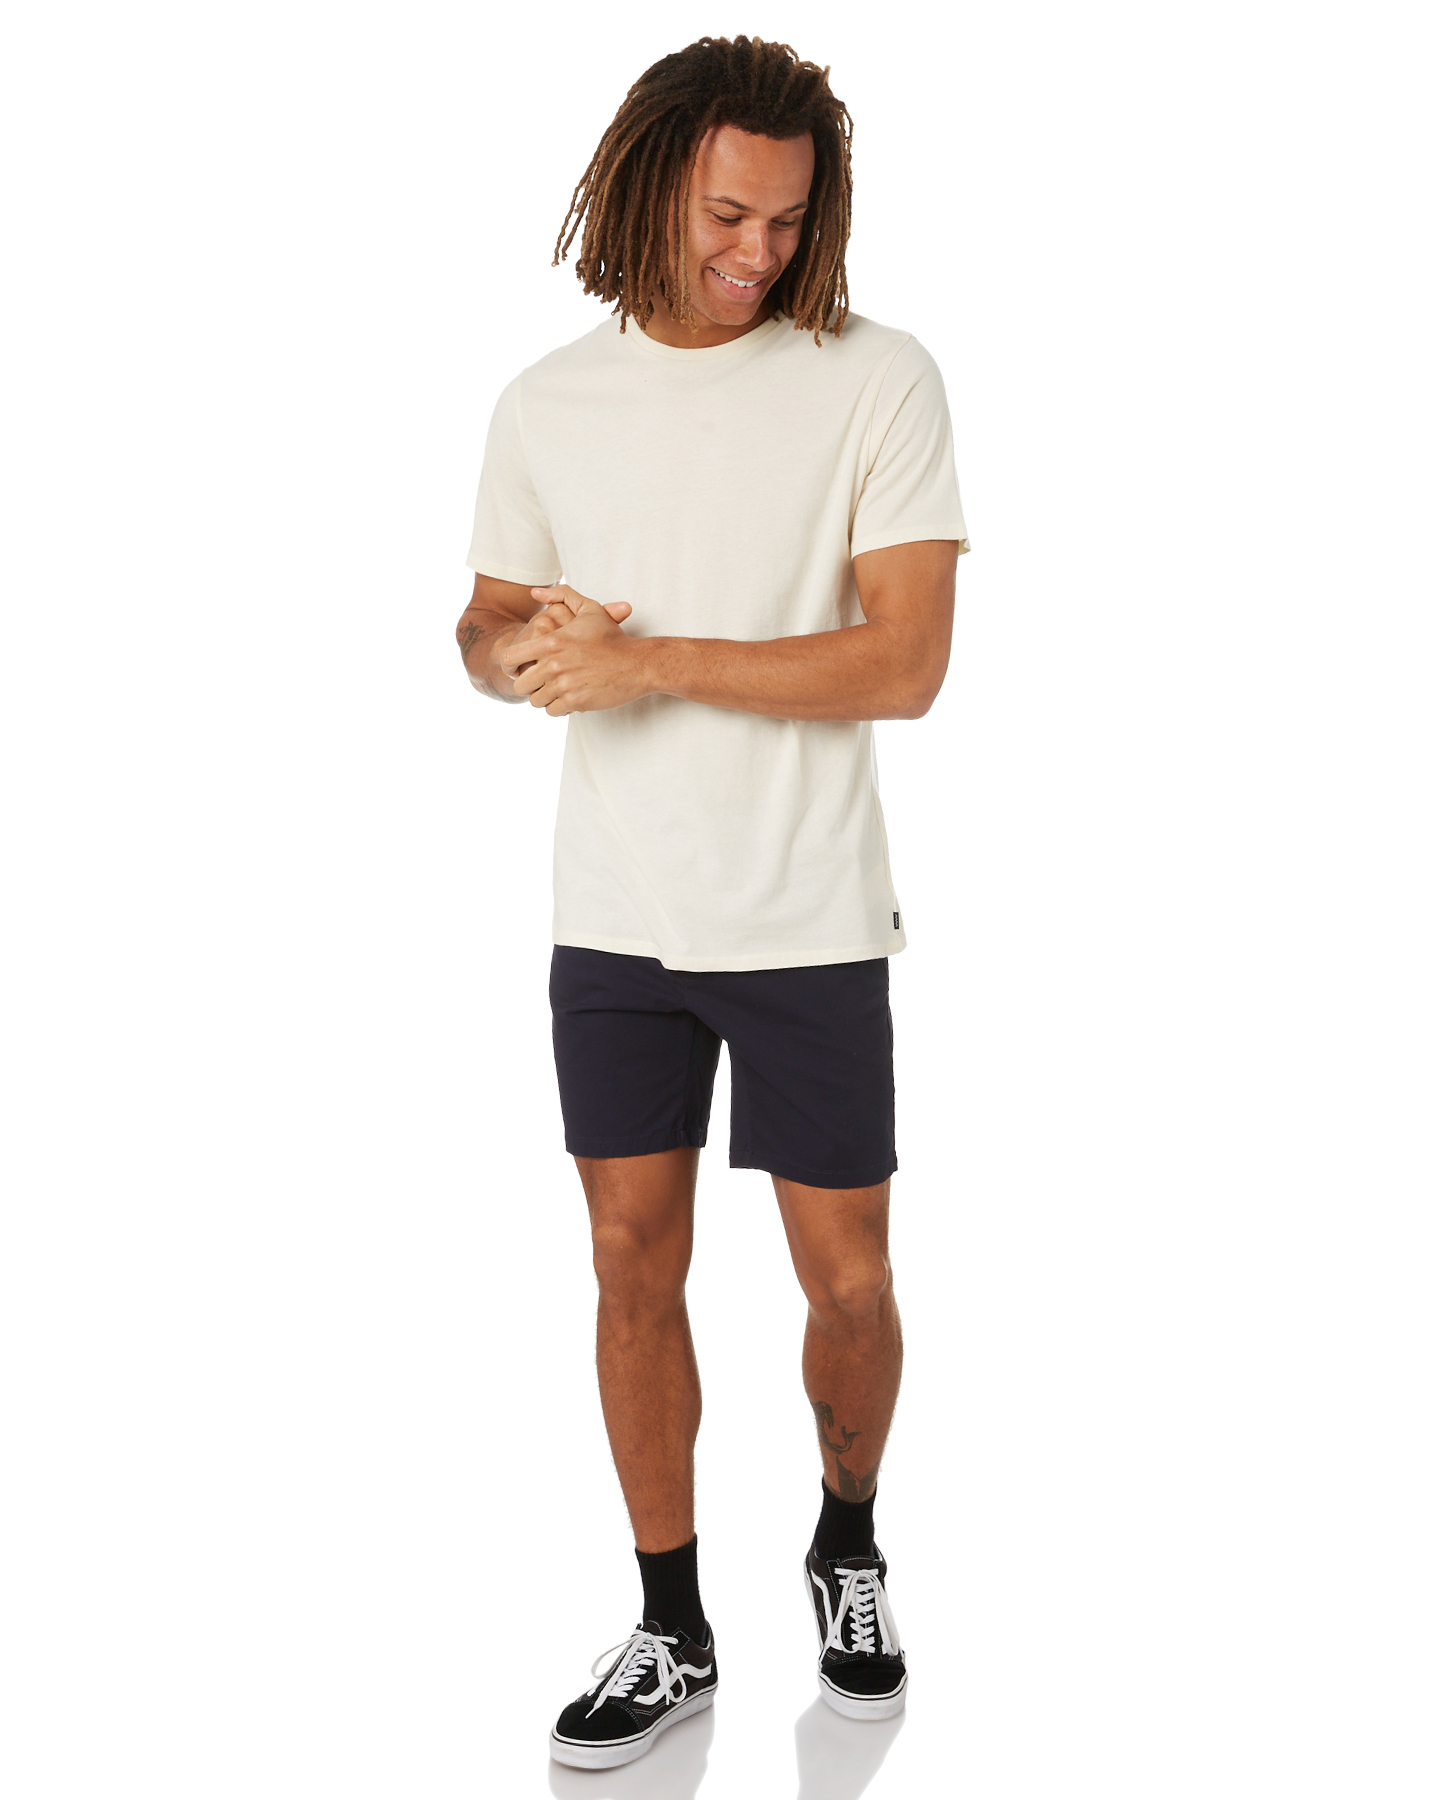 New-Swell-Men-039-s-Dandy-Mens-Chino-Short-Cotton-Fitted-Elastane-Blue thumbnail 24